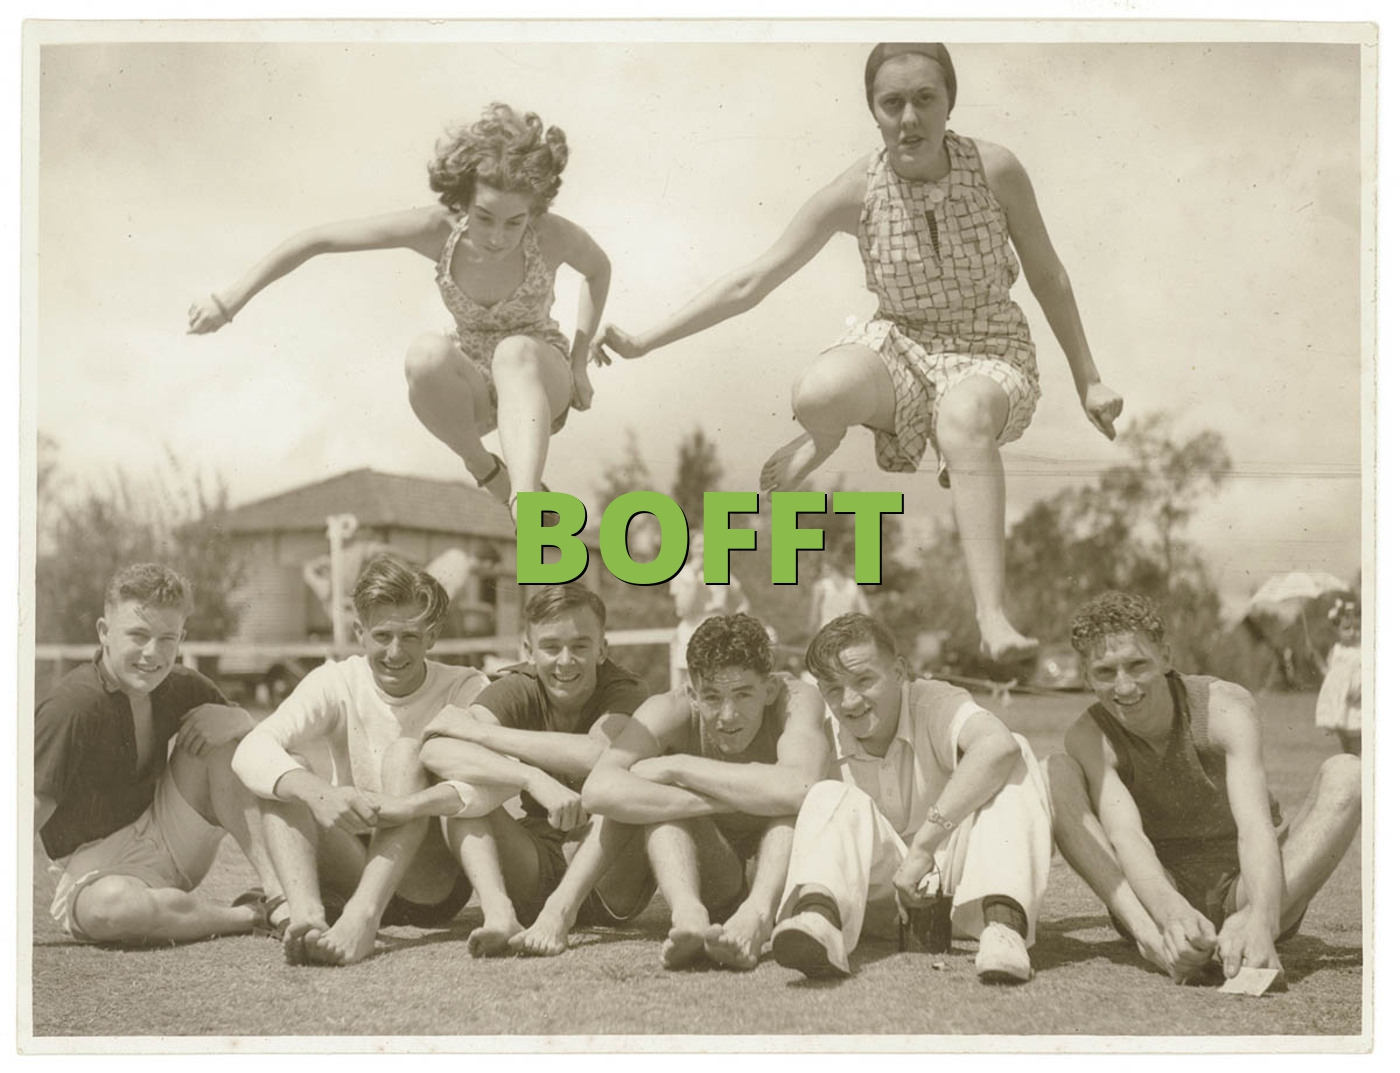 BOFFT